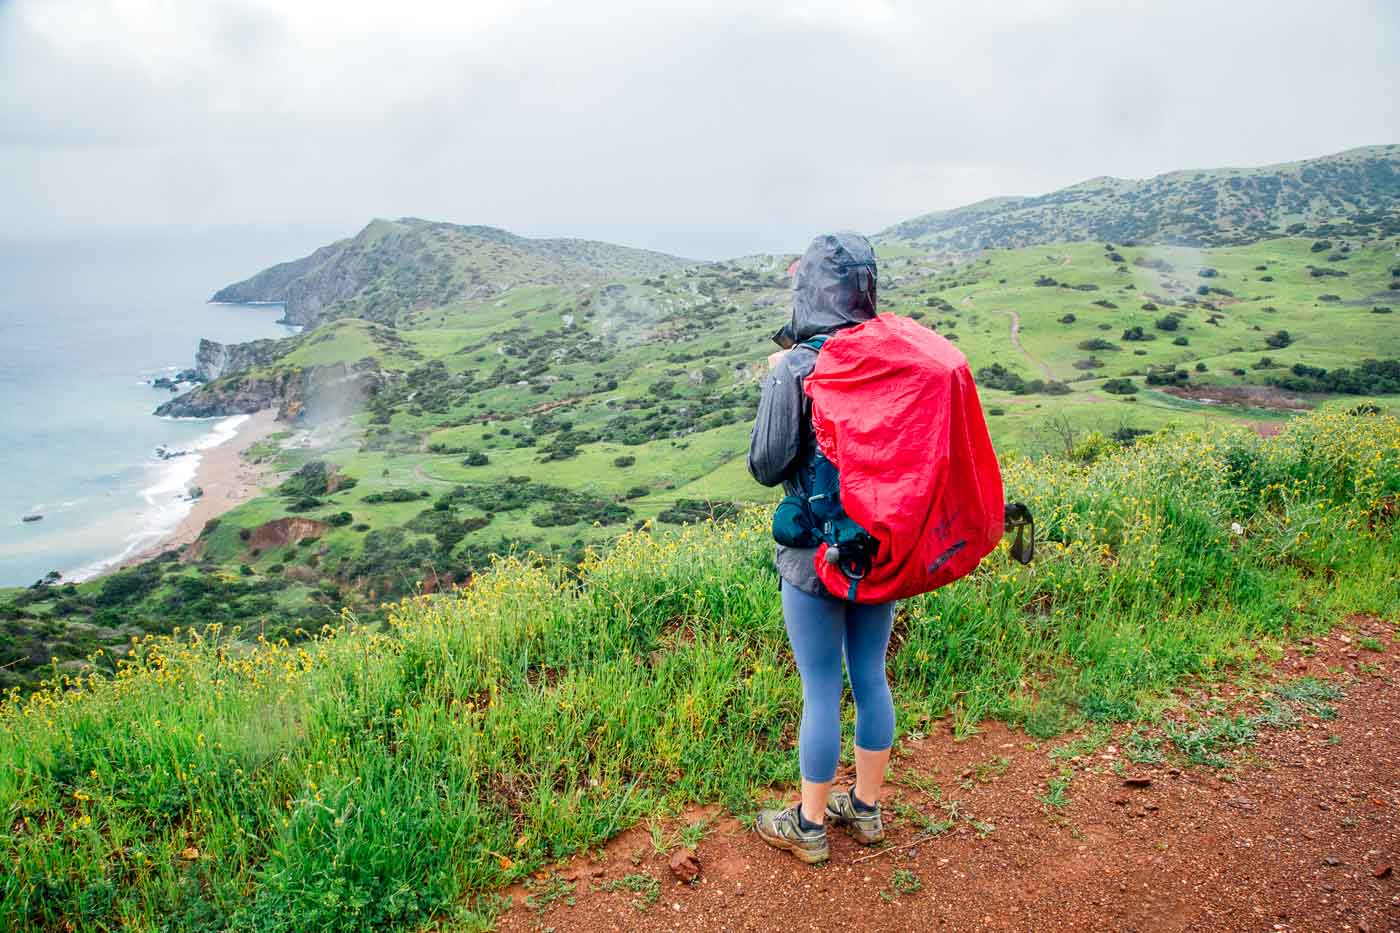 Woman on a trail overlook, looking out on the island and the ocean. The skies are rainy and she is wearing a rain jacket.